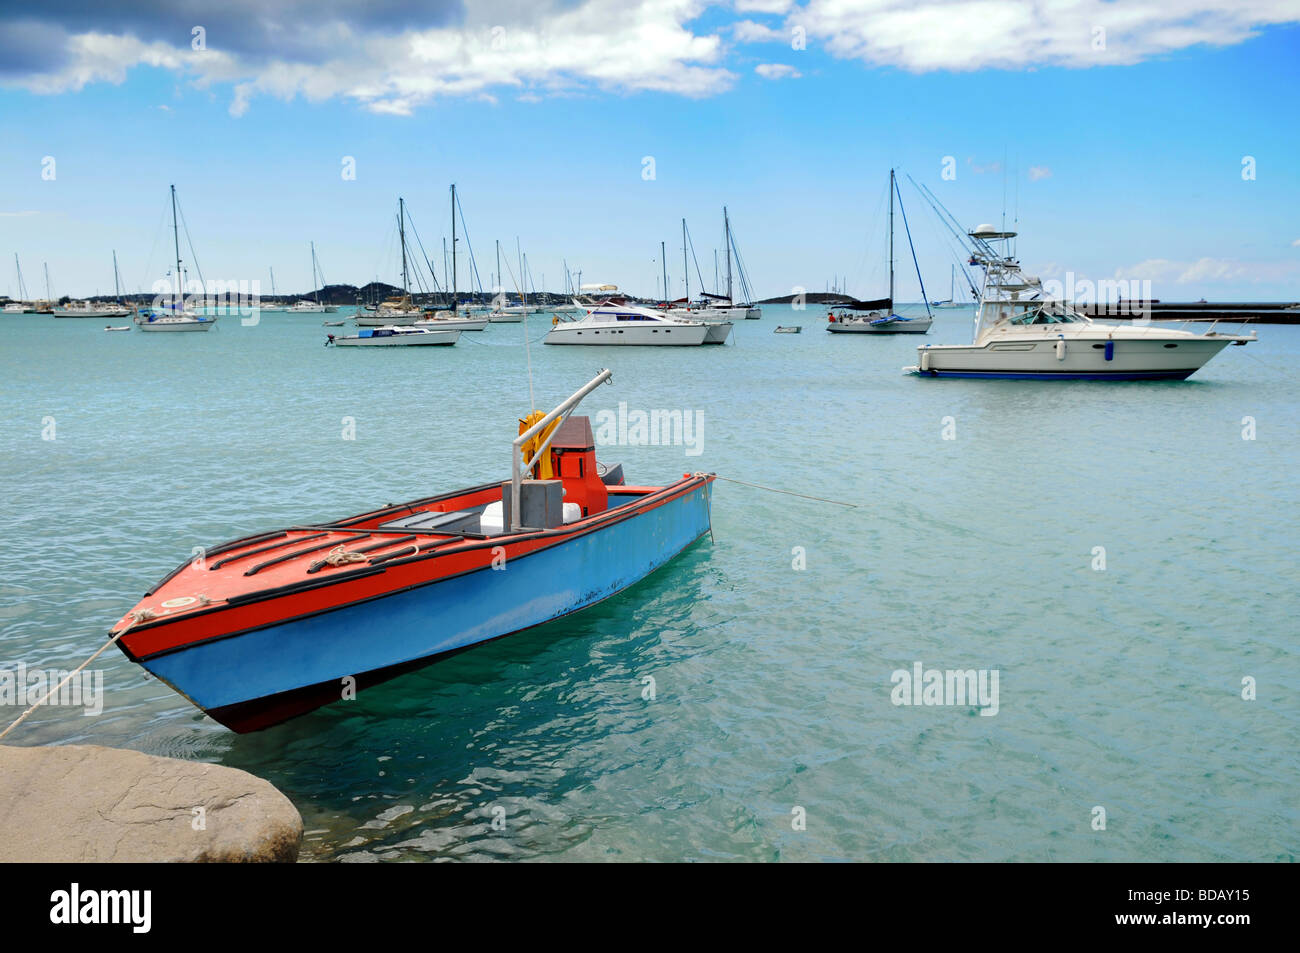 Old boat moored in Saint Martin in the Caribbean with modern boats in the background - Stock Image